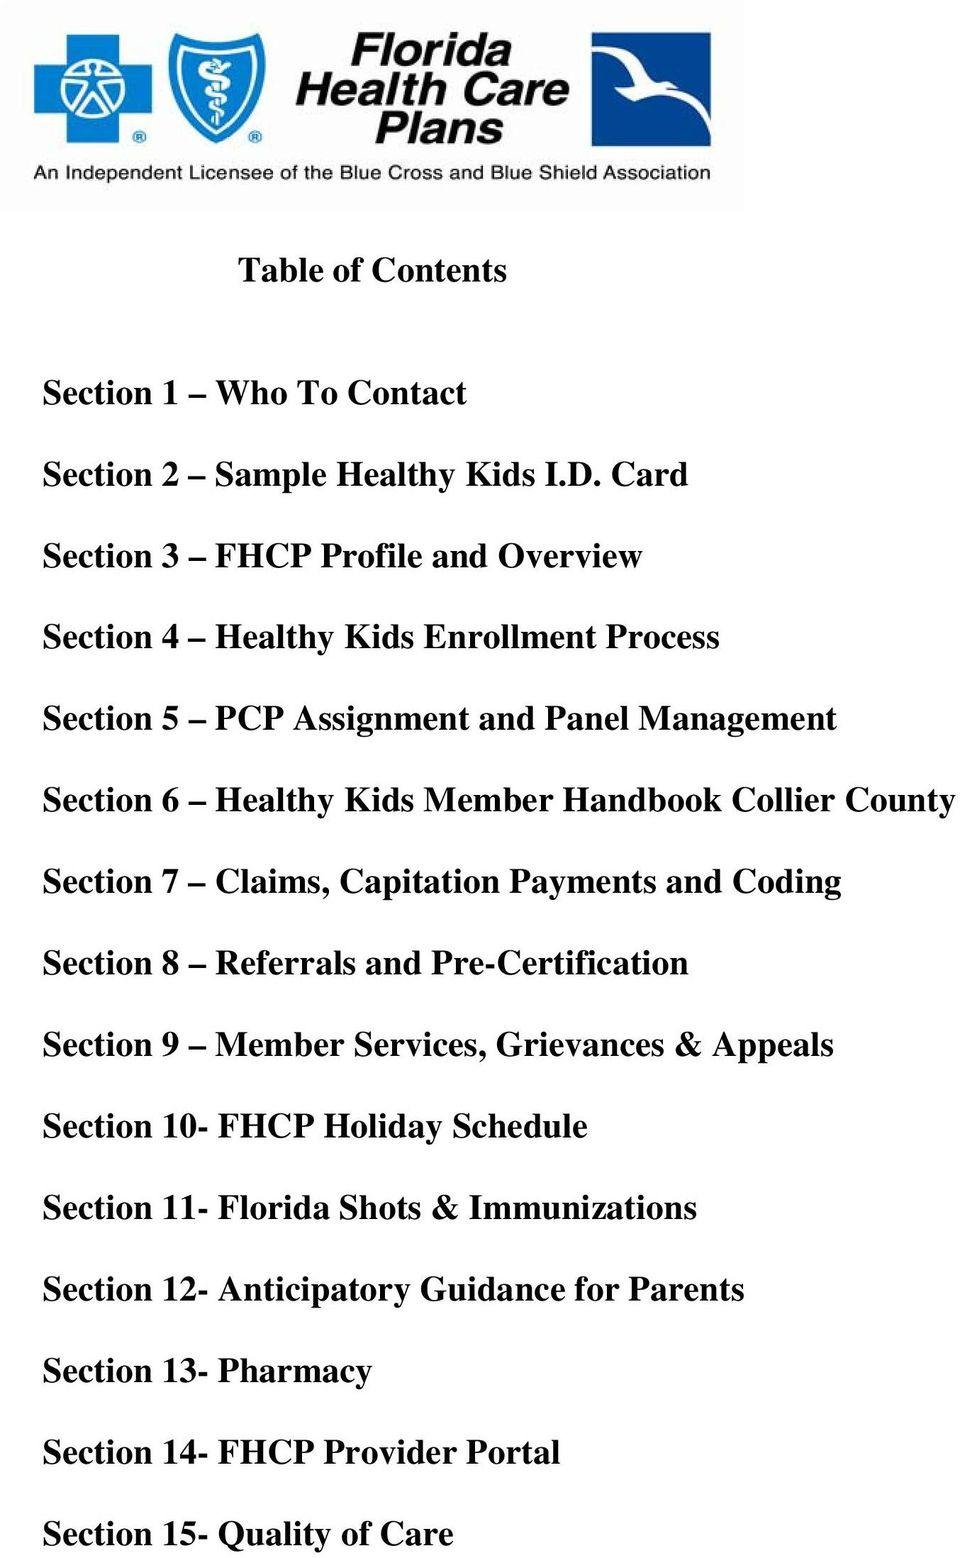 Kids Member Handbook Collier County Section 7 Claims, Capitation Payments and Coding Section 8 Referrals and Pre-Certification Section 9 Member